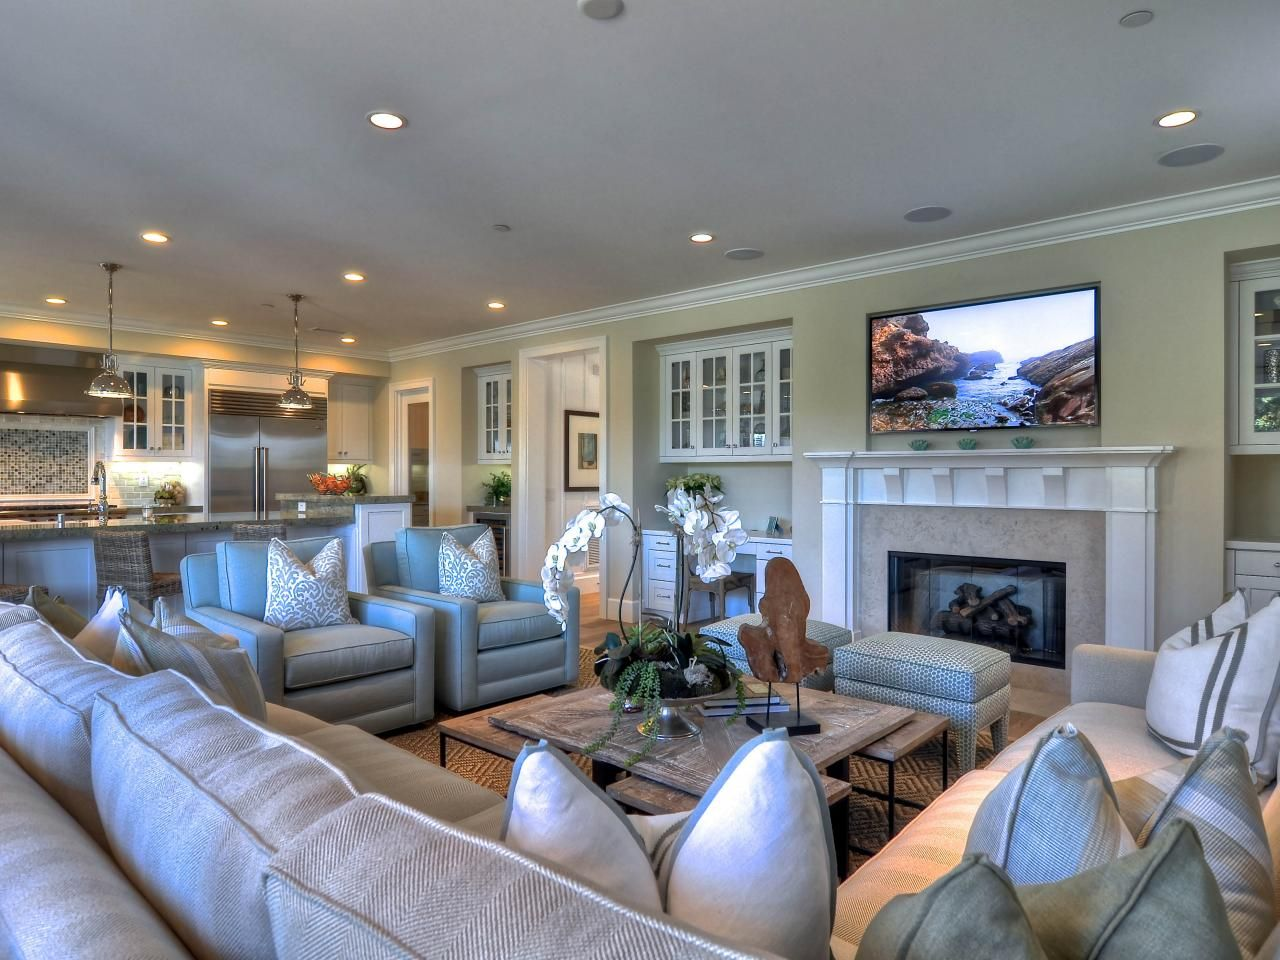 Coastal decor is found in the details in this spacious for Family lounge furniture